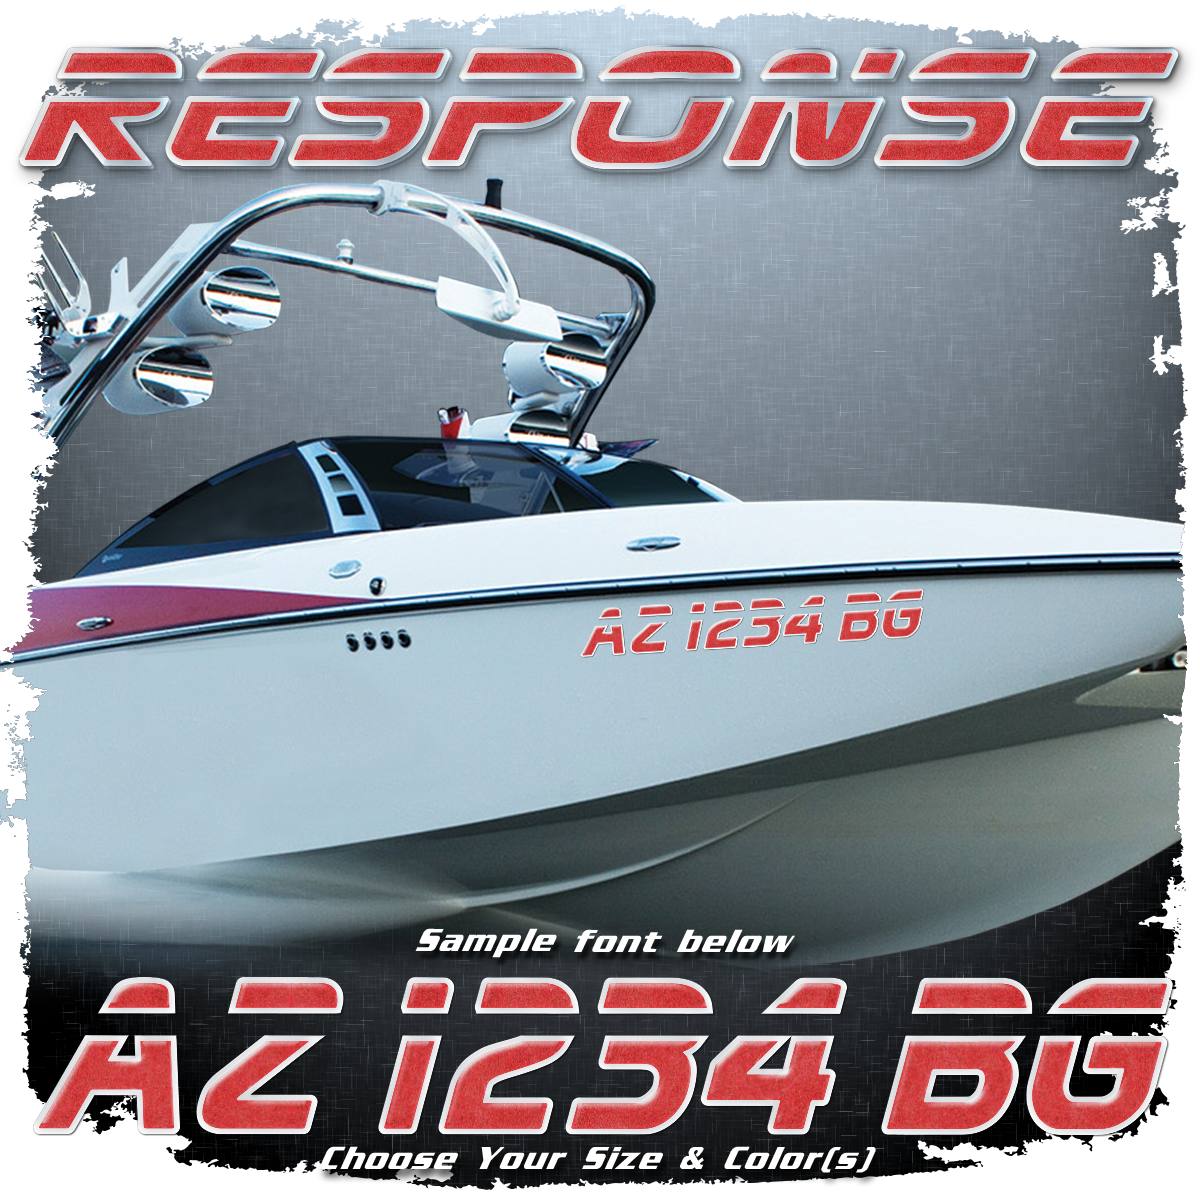 Malibu Response Registration, 2000-05, 07 Choose Your Own Colors  (2 included)